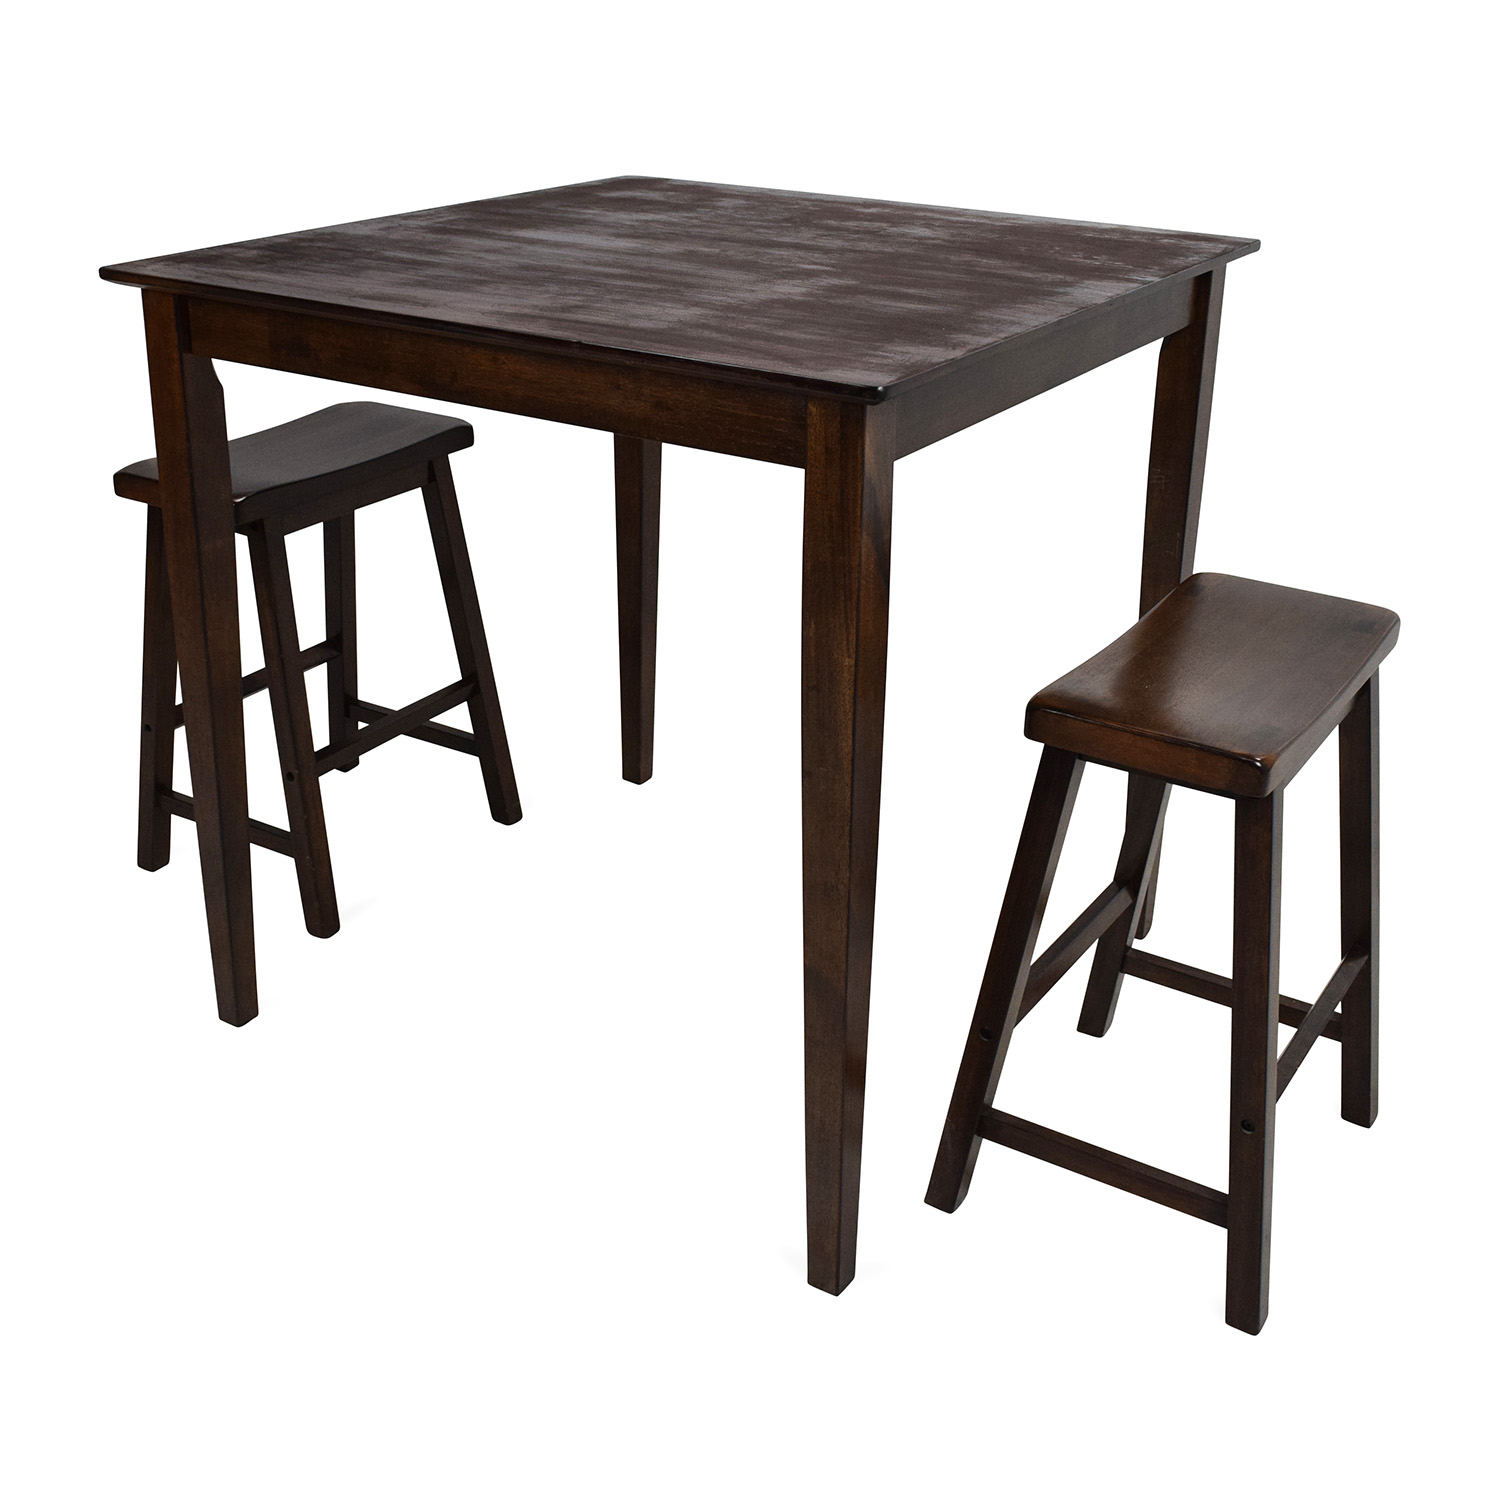 81 off ashley furniture ashley furniture kitchen table for Kitchen set table and chairs